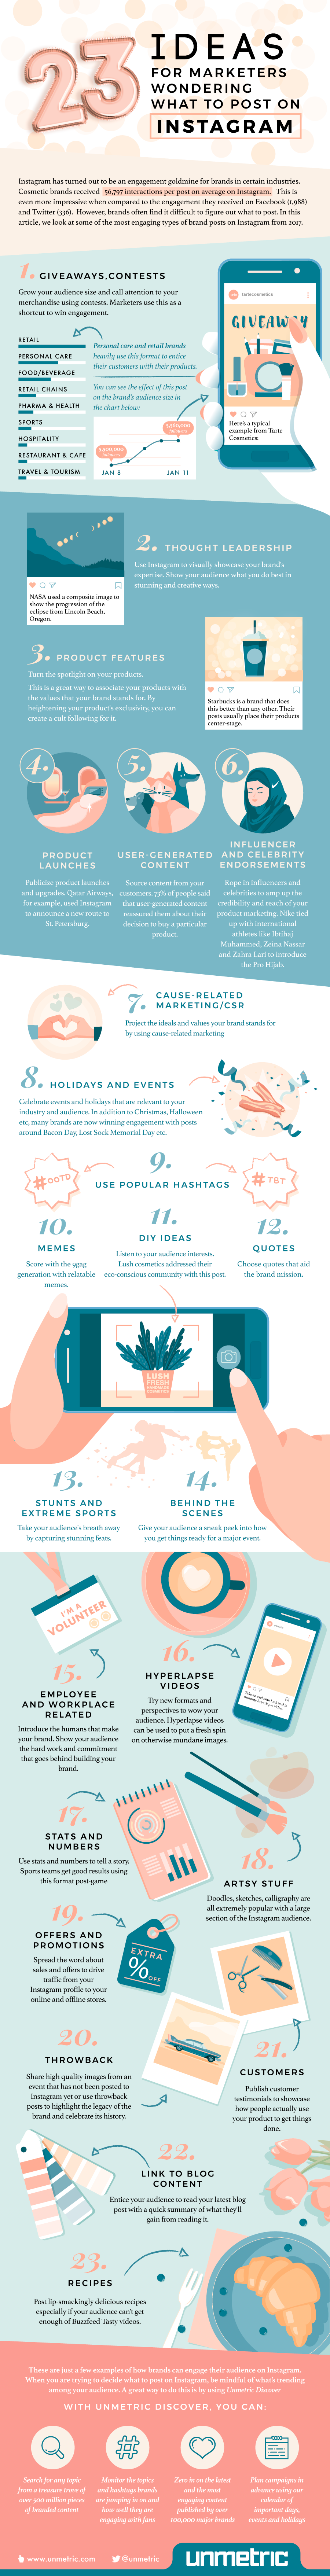 What to post on Instagram infographic